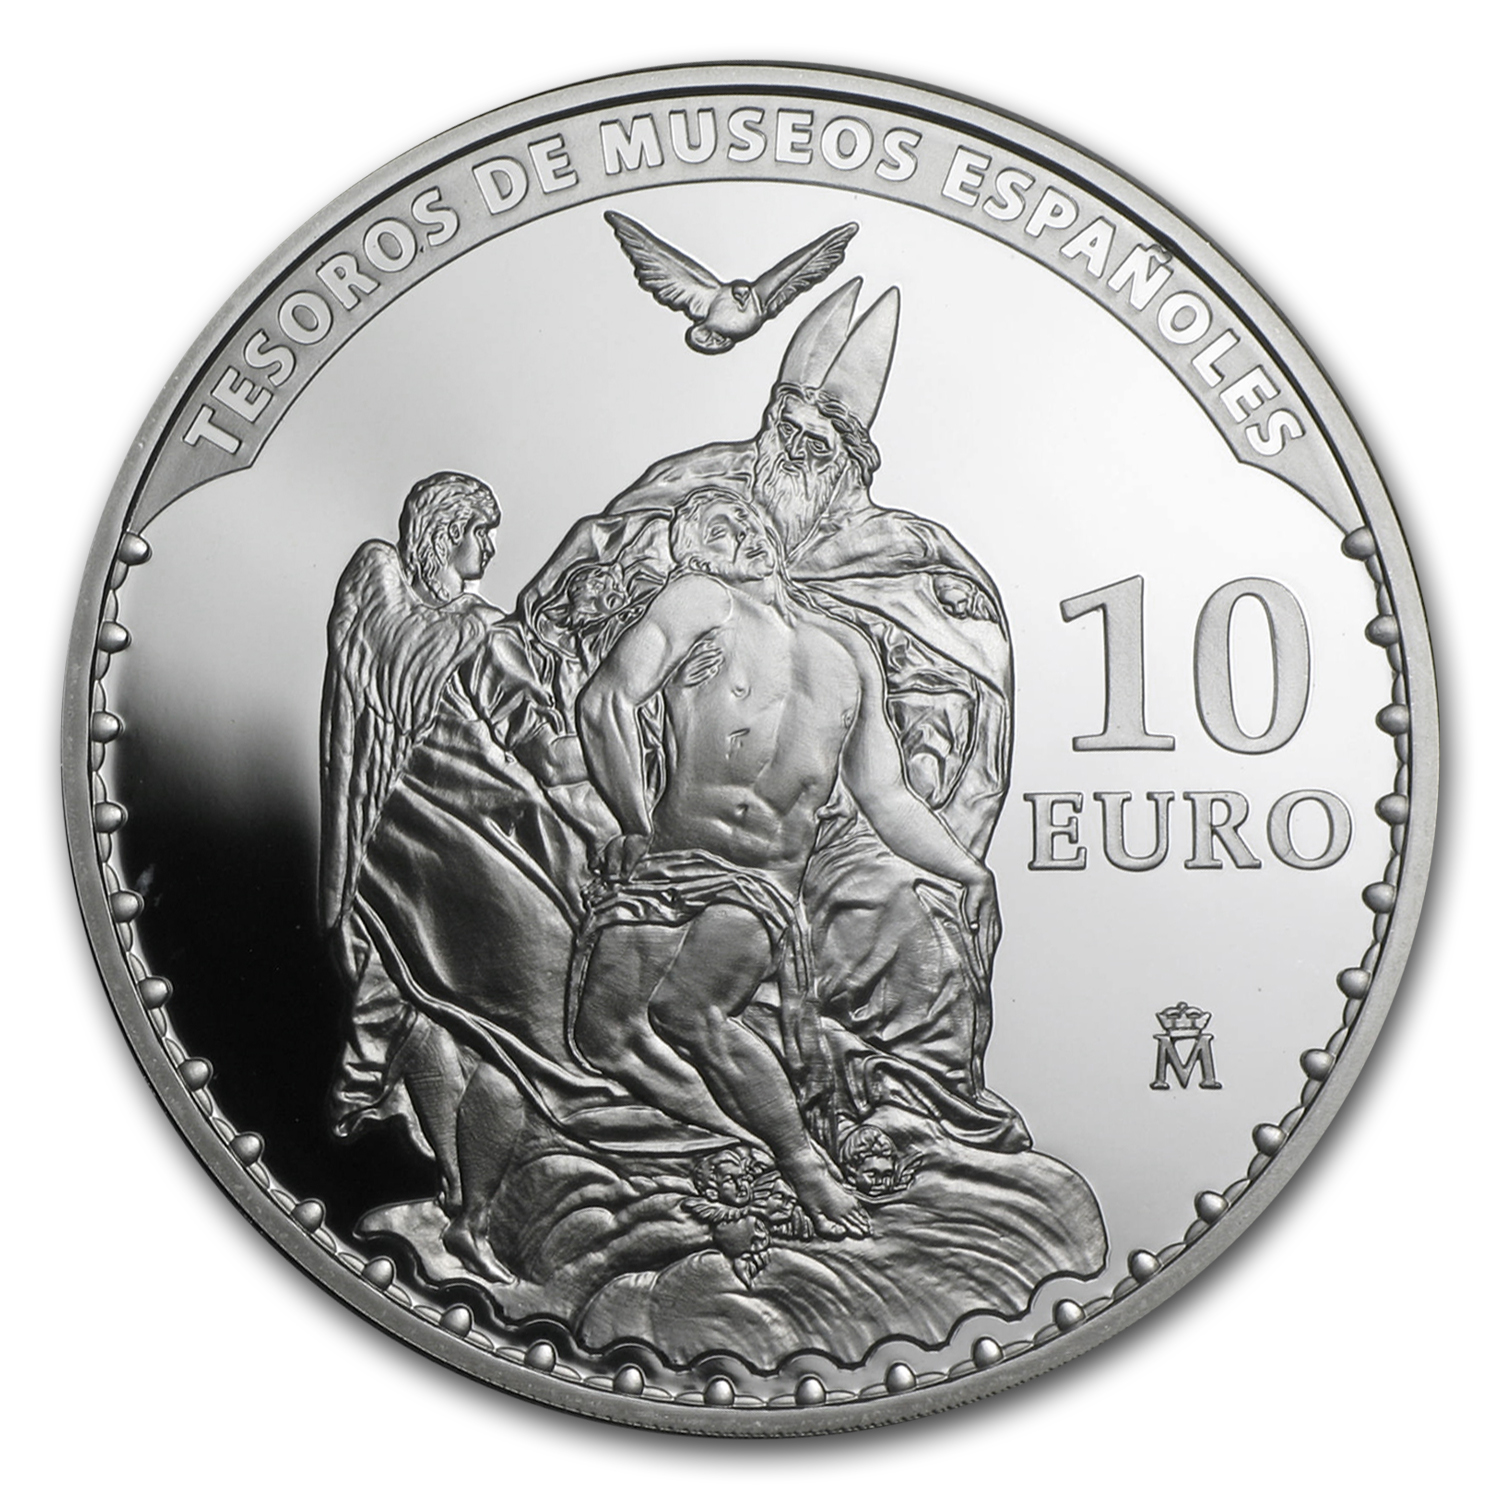 2014 Spain Silver €10 Treasures of the Spanish Museums (El Greco)